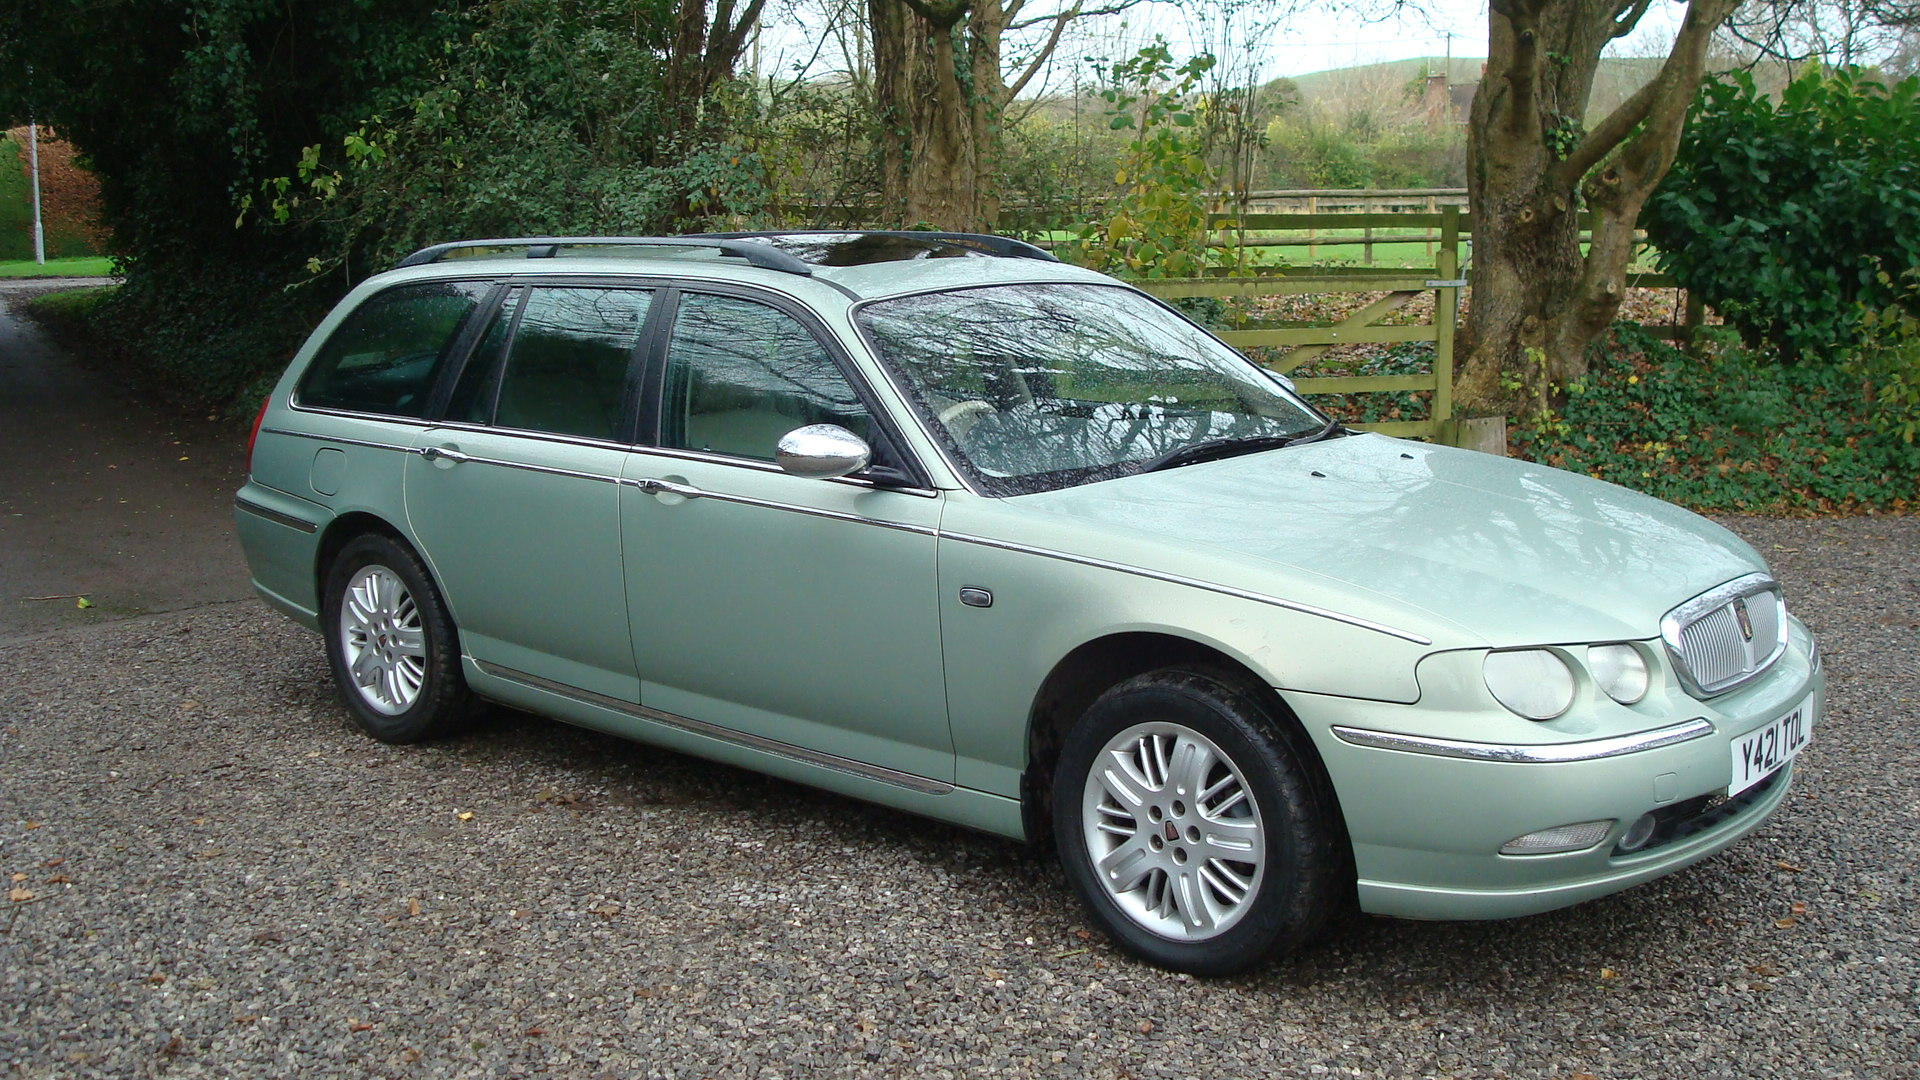 rover 75 2 5 v6 connoisseur se tourer 2001 y reg country classics country classics. Black Bedroom Furniture Sets. Home Design Ideas